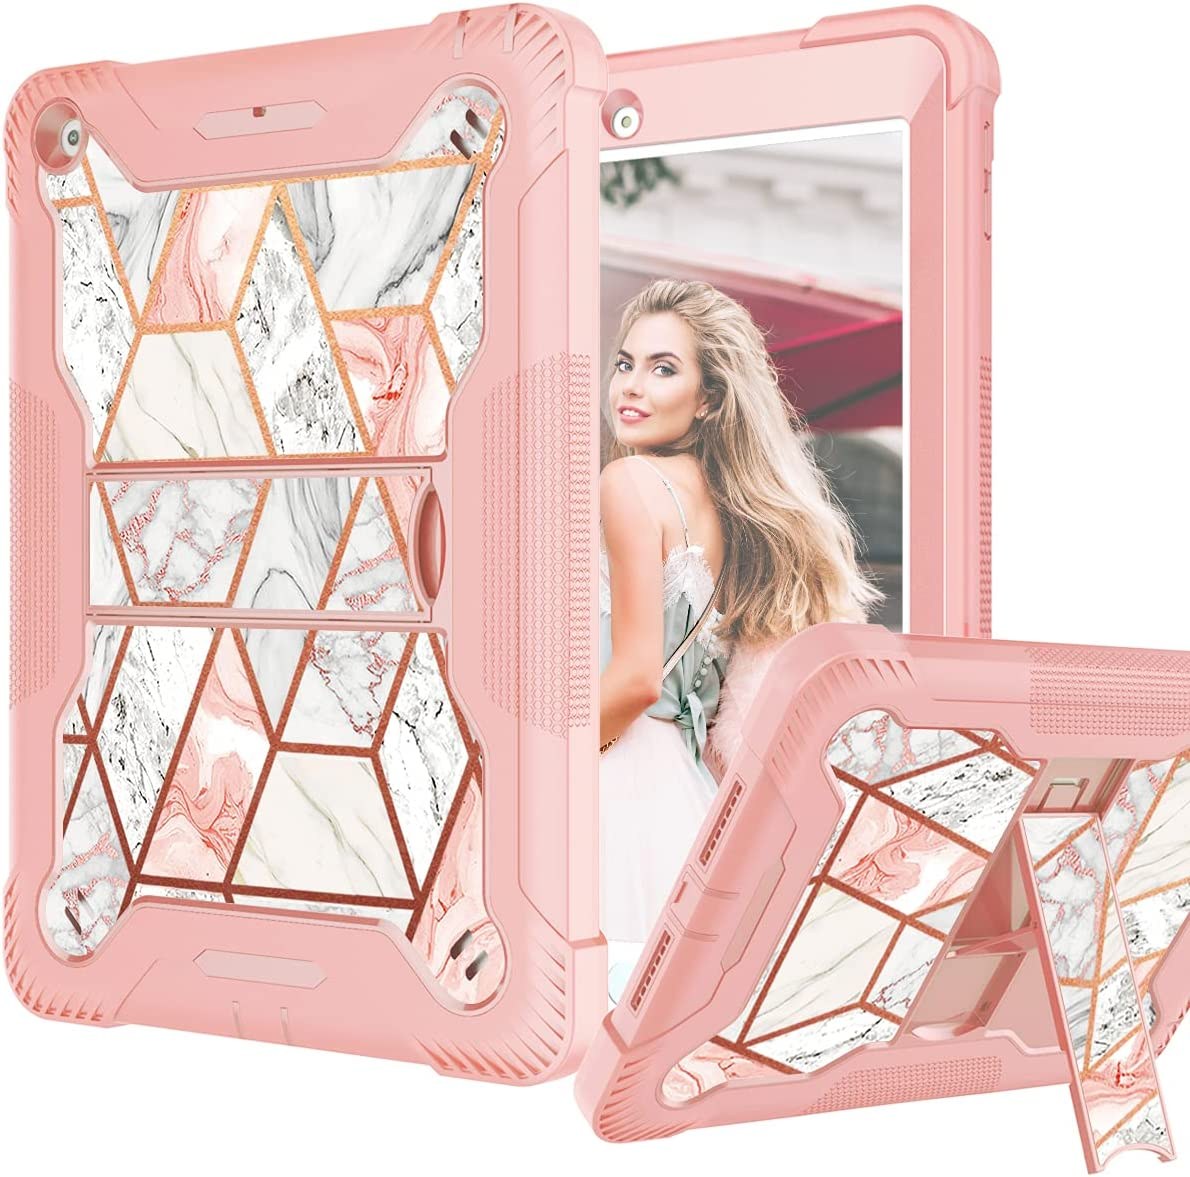 Fingic iPad 6th Generation Case, iPad 9.7 Case 2018/2017, iPad 5th Gen Case Glitter Rose Gold Marble Heavy Duty Shockproof Kickstand Rugged High Impact Protective Case for 9.7 Inch iPad 2018/ 2017